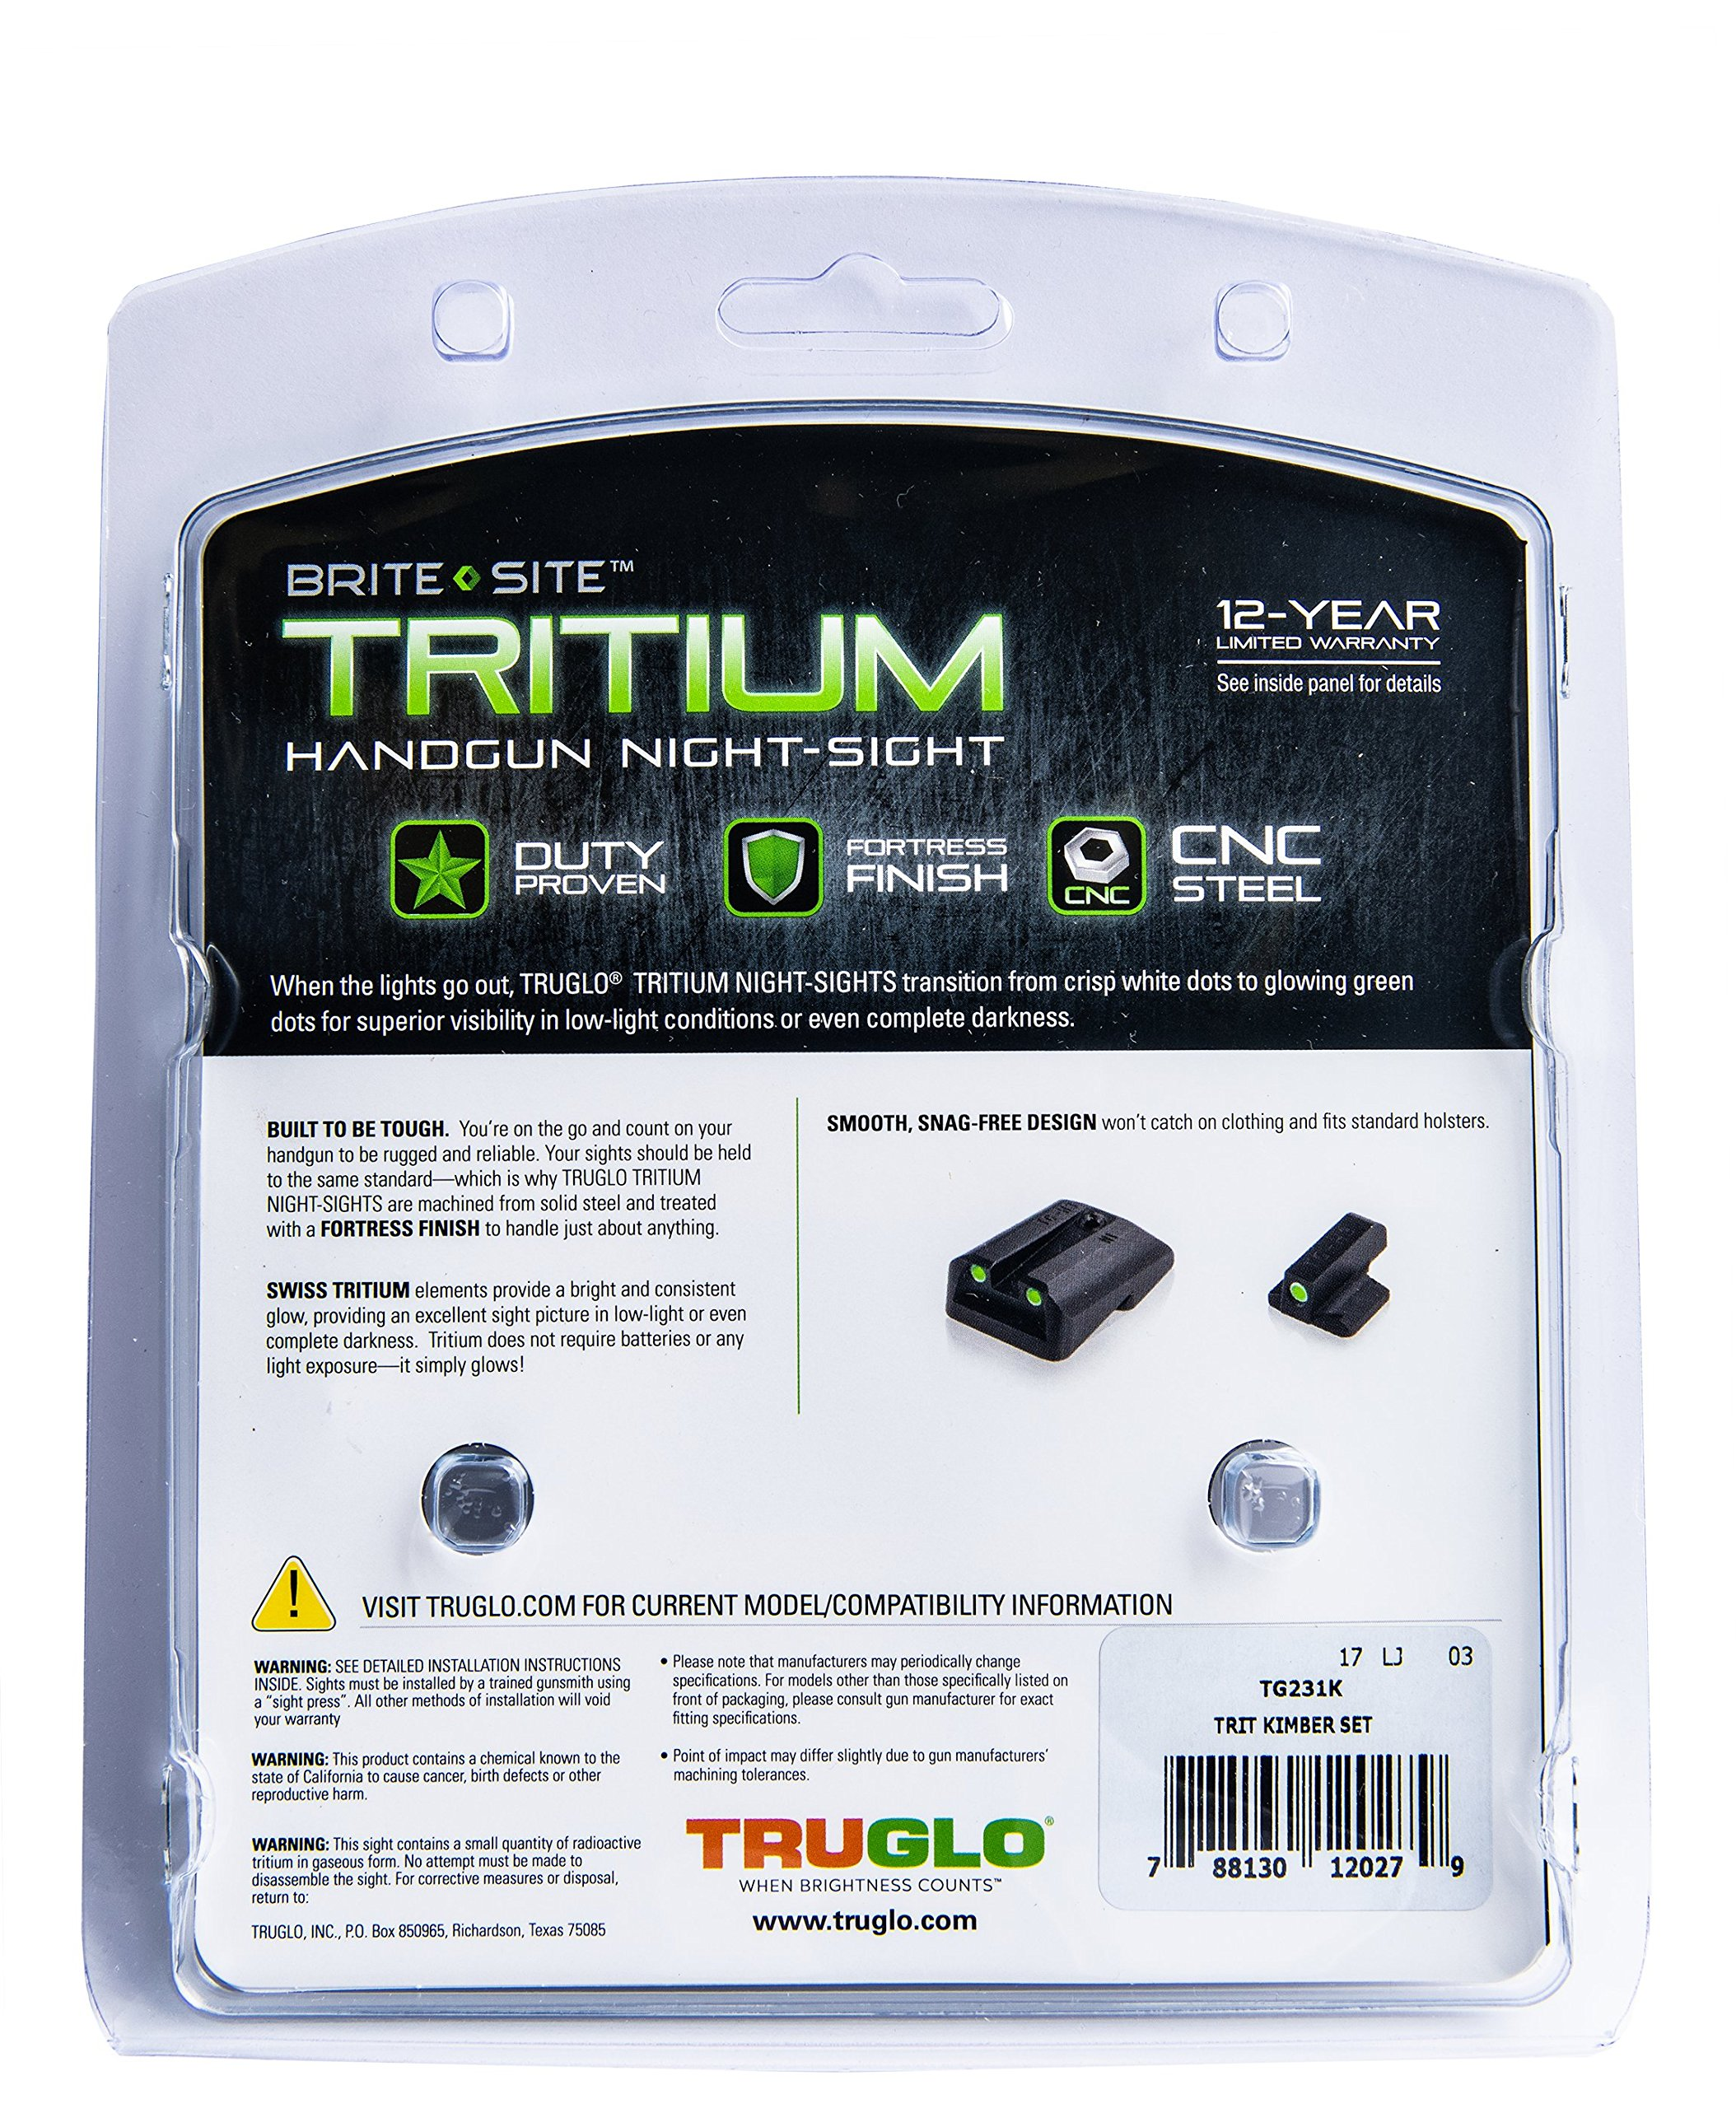 TRUGLO Tritium Handgun Glow-in-the-Dark Night Sights for Kimber Pistols, Kimber 1911 Models with Fixed Rear Sight by TRUGLO (Image #5)